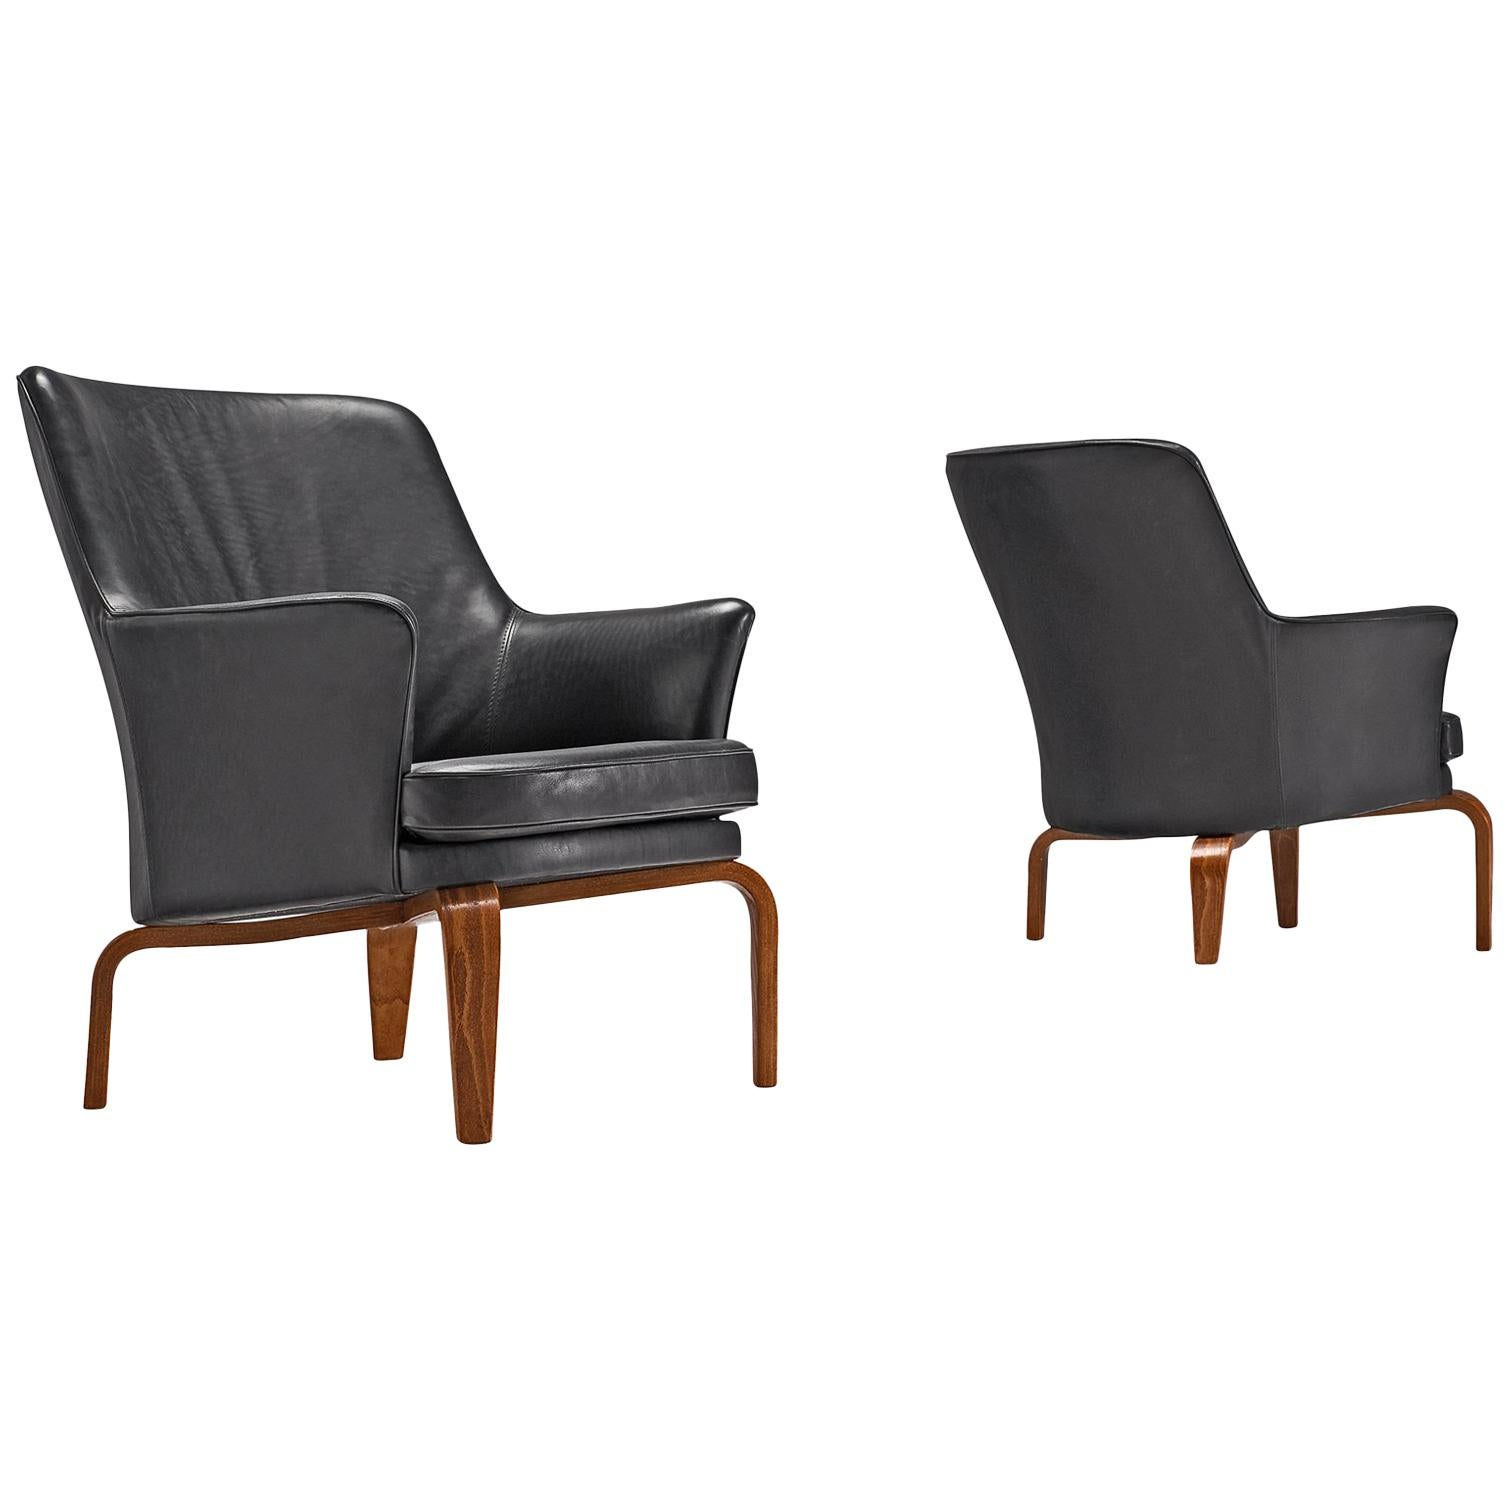 Arne Norell Pair of Reupholstered High Quality Leather 'Pilot' Armchairs